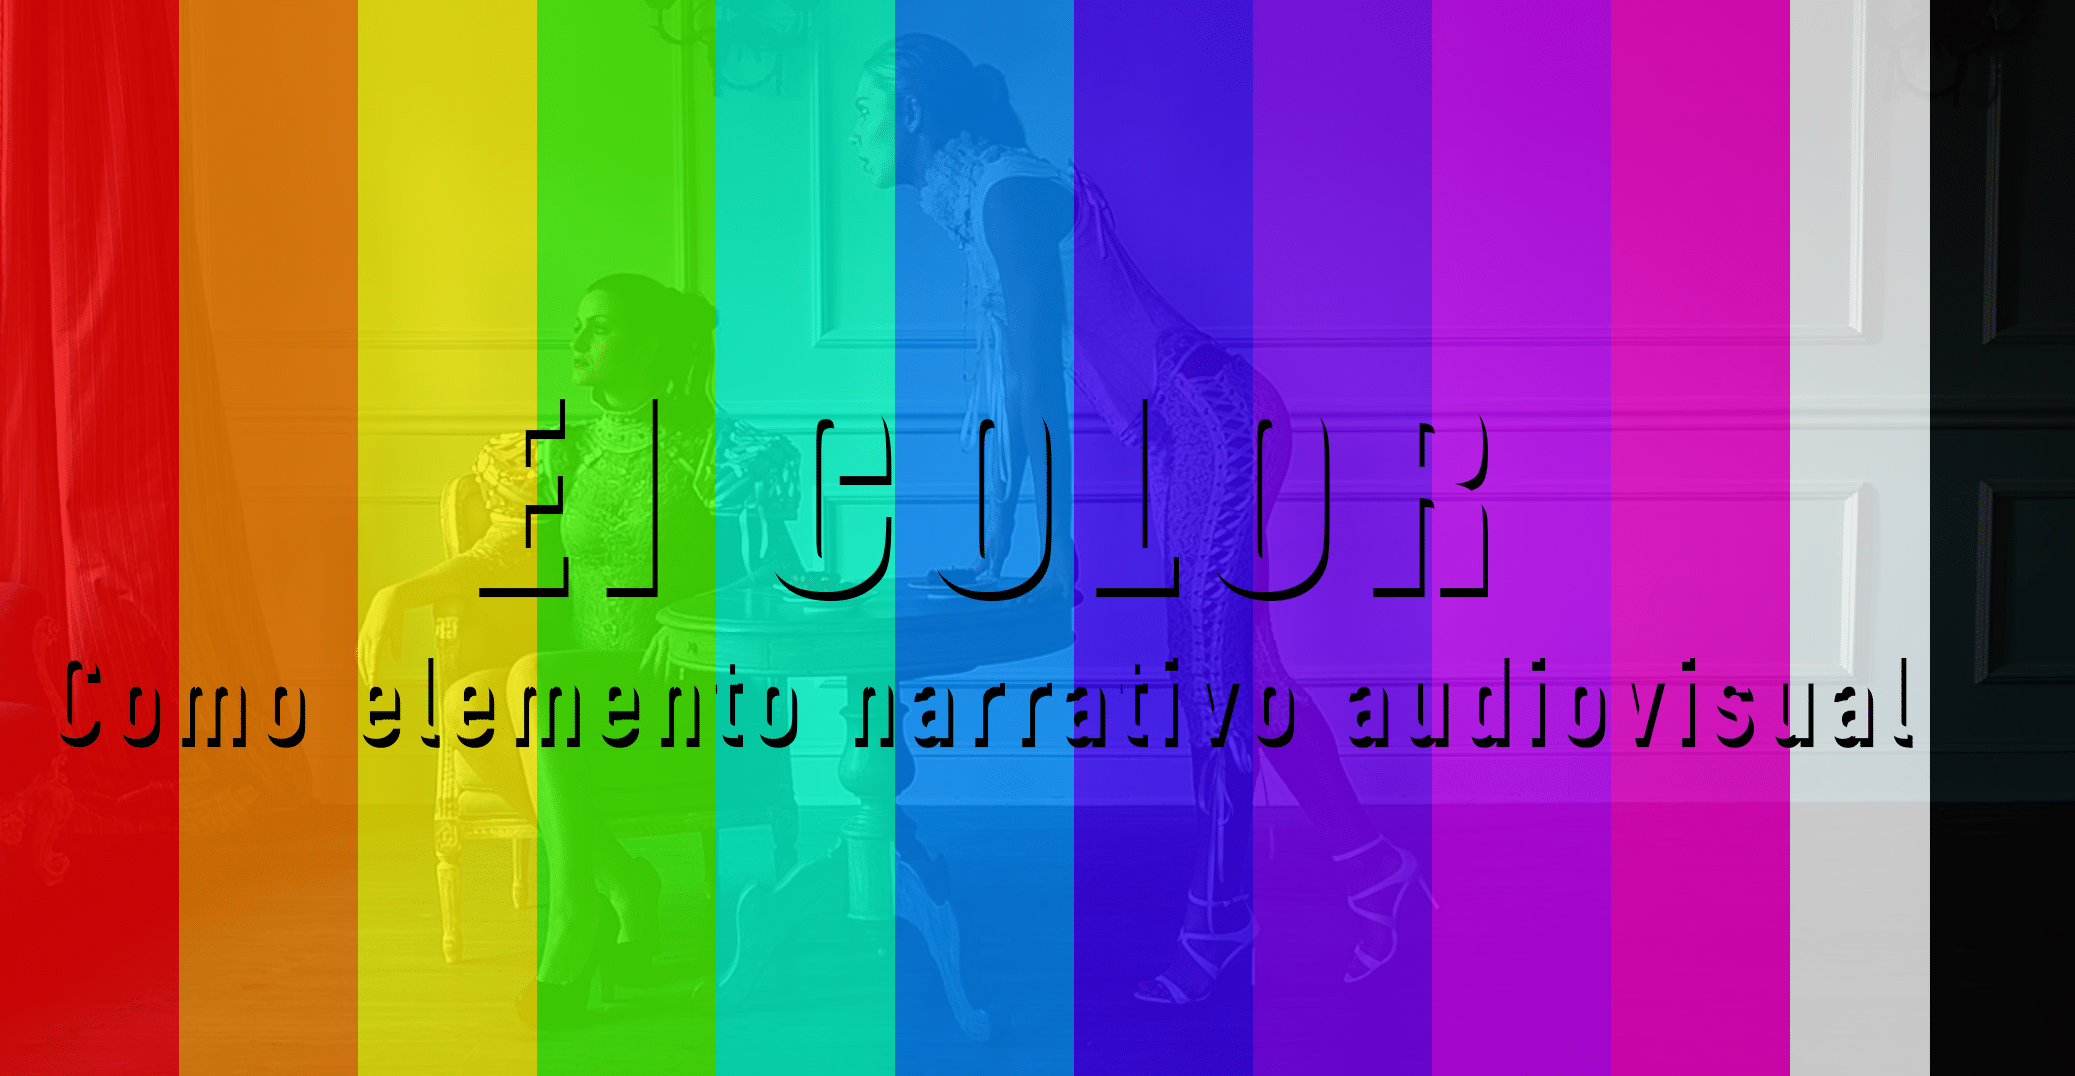 Color elemento narrativo audiovisual